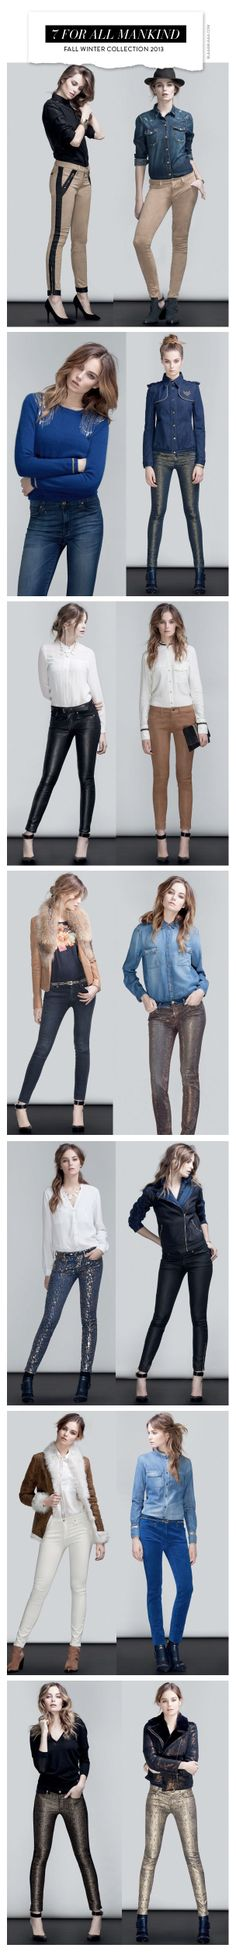 7 For All Mankind Fall Winter Collection 2013 view by Takotak.com